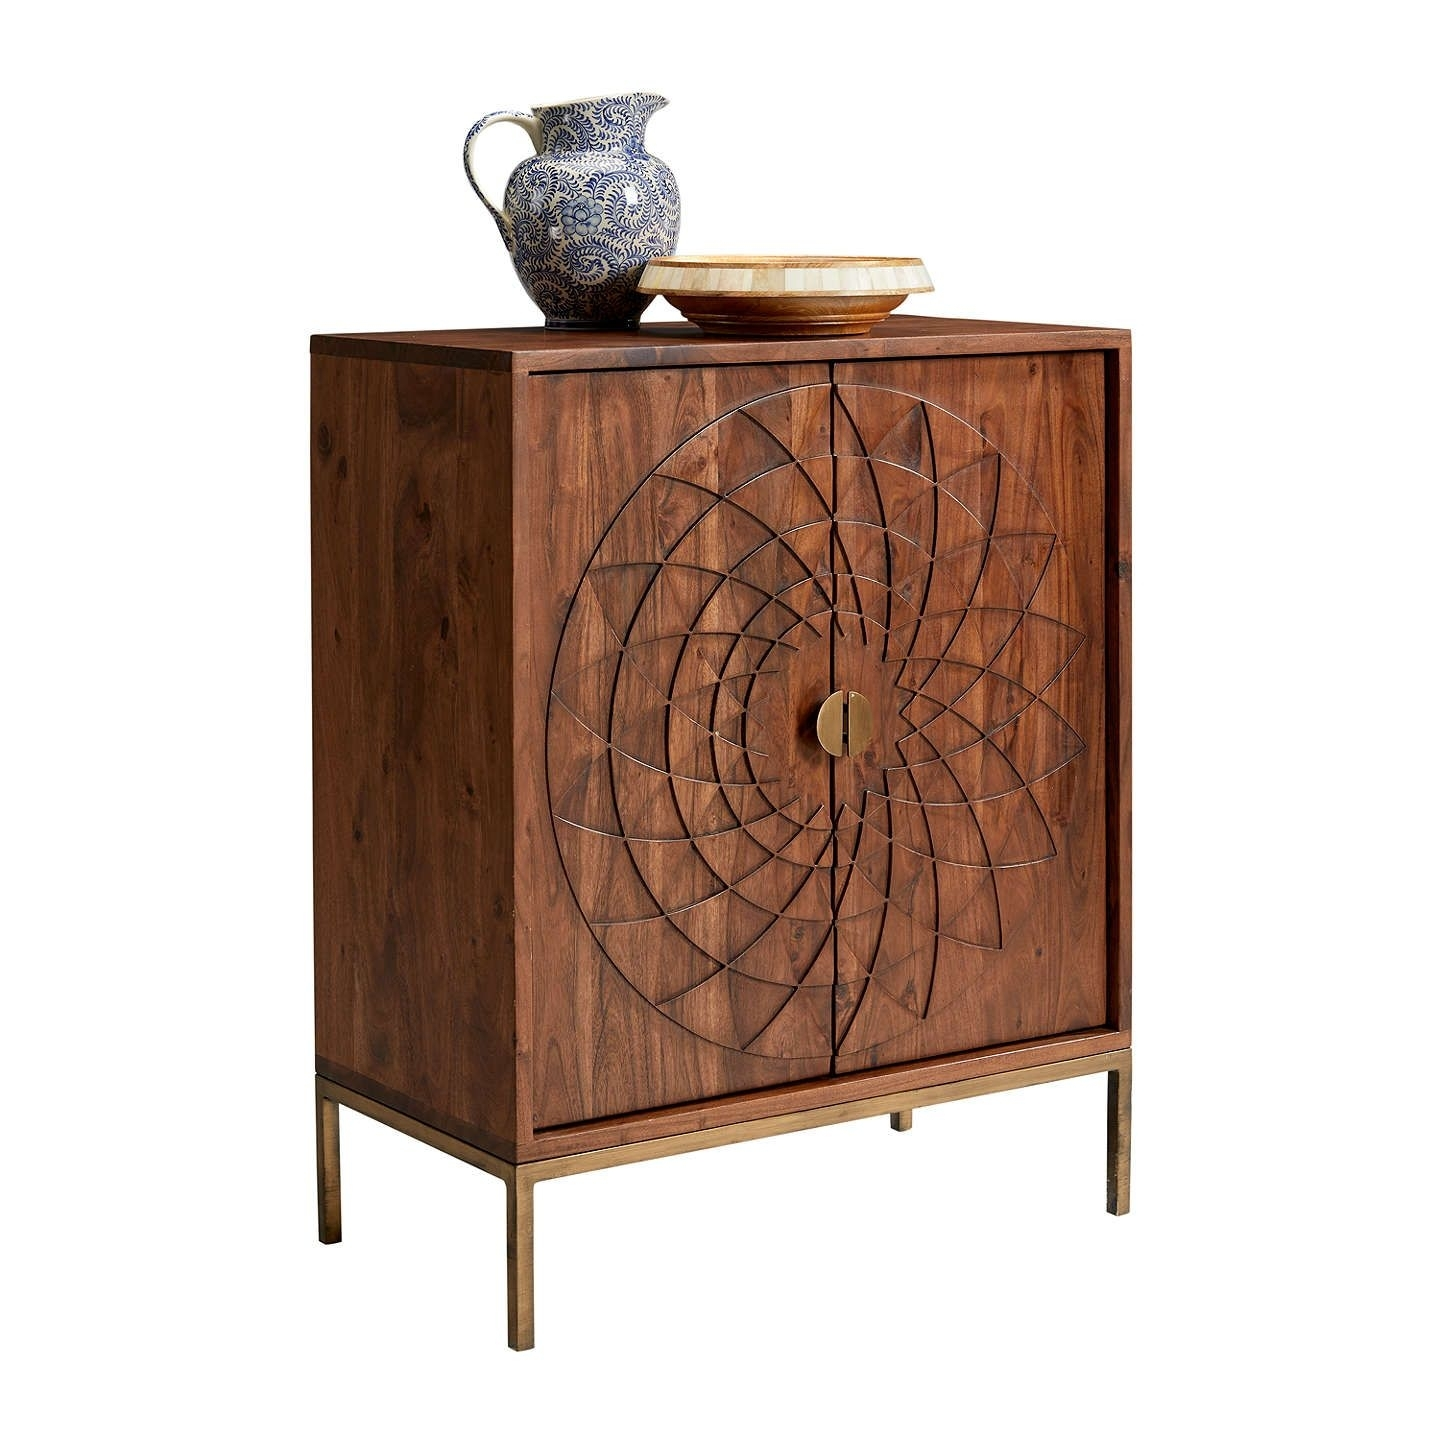 John Lewis & Partners Array Fusion Cabinet, Dark Brown | Sitting intended for 2-Door/2-Drawer Cast Jali Sideboards (Image 16 of 30)